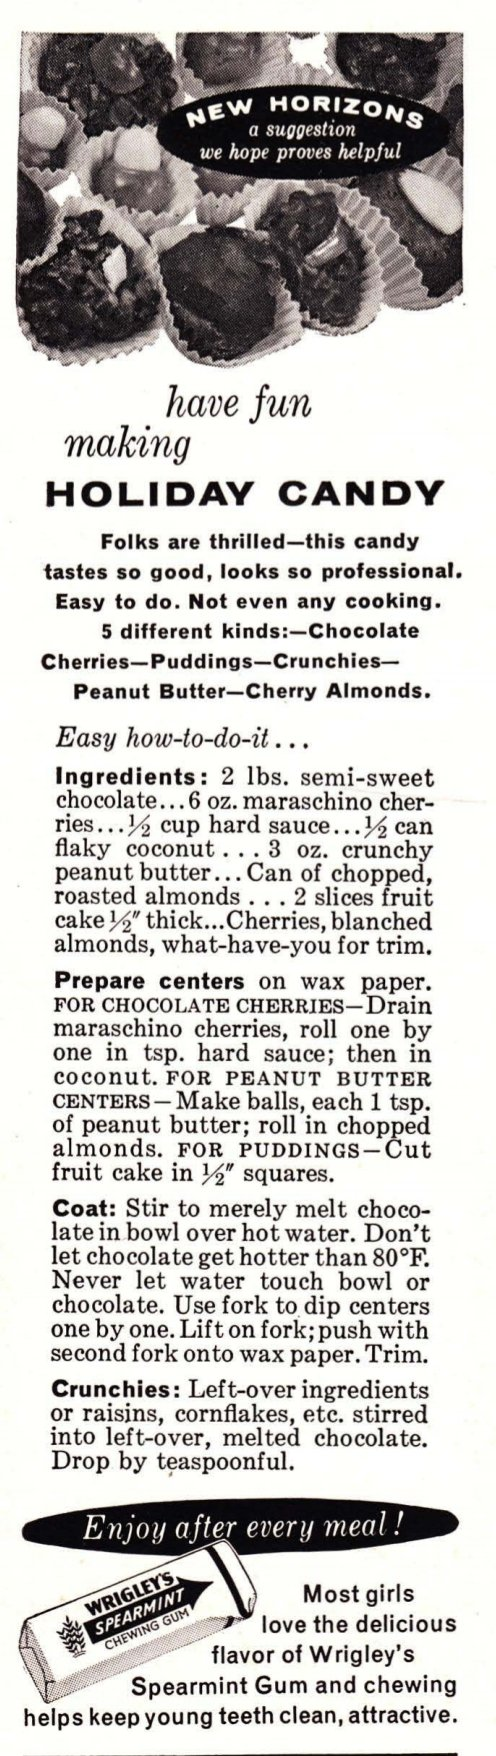 Christmas candy 5 ways. A holiday recipe from the 1950s.